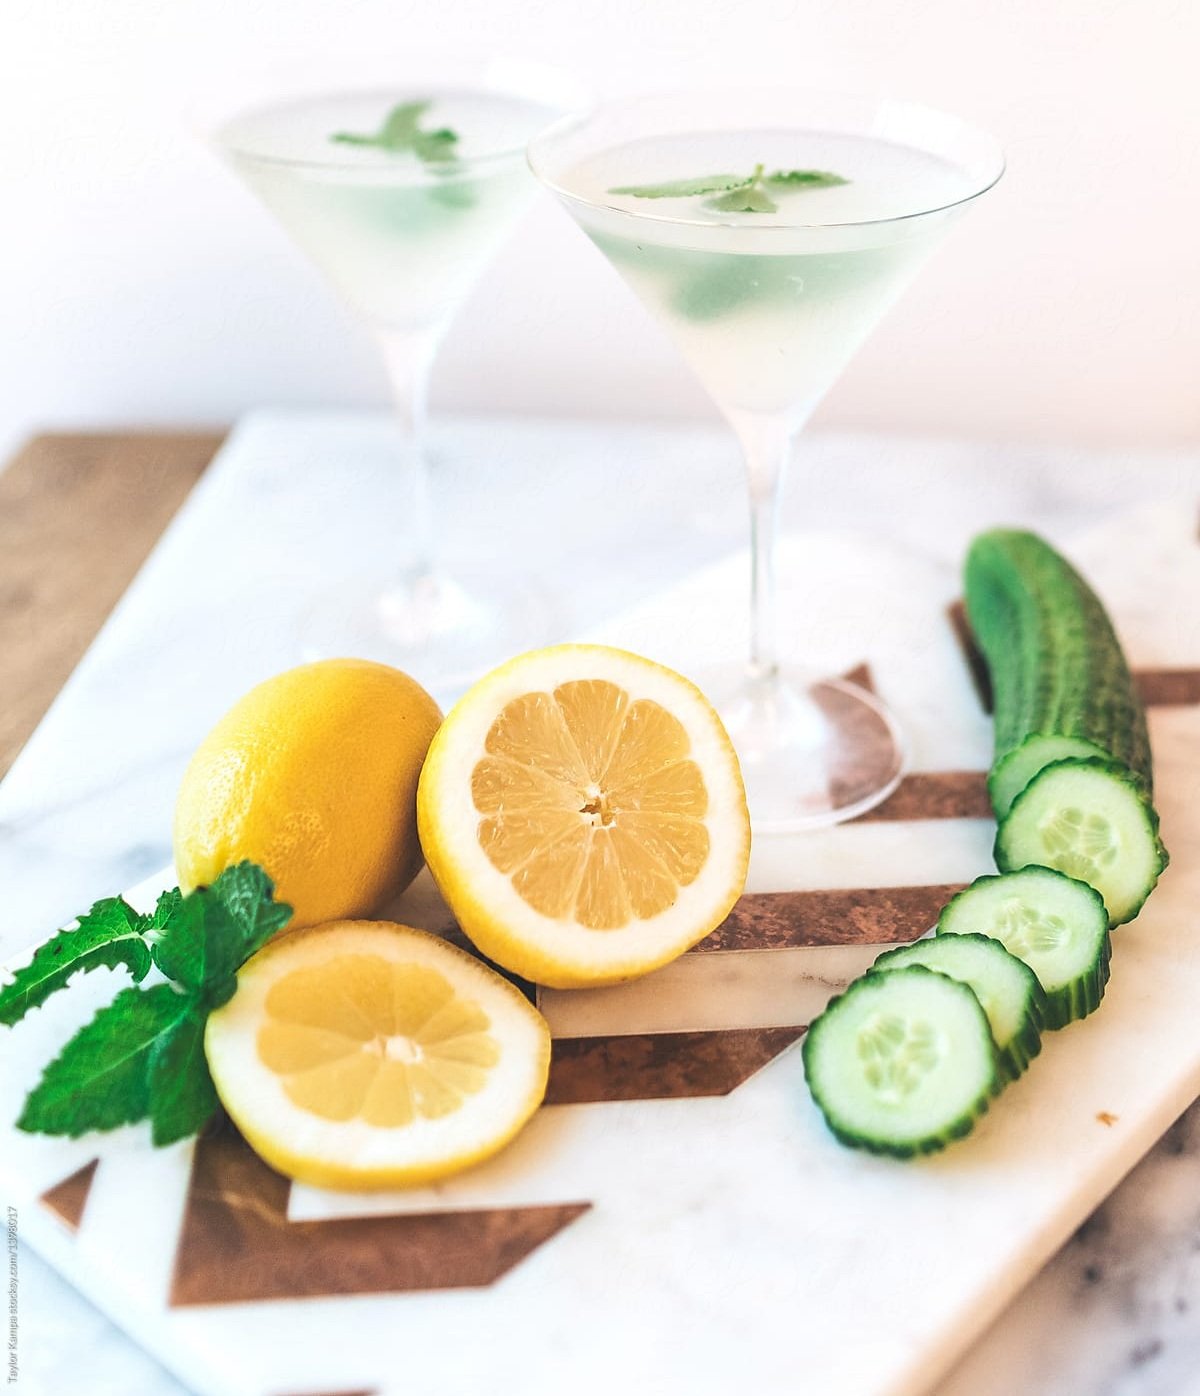 Catawba Cooler - Ingredients: Muddy River Coconut Carolina rum, cucumber, lemon, coconut water2 oz Muddy River Coconut Carolina RumMuddle cucumber1/2 oz lemon juiceShake and strain over iceTop with coconut water